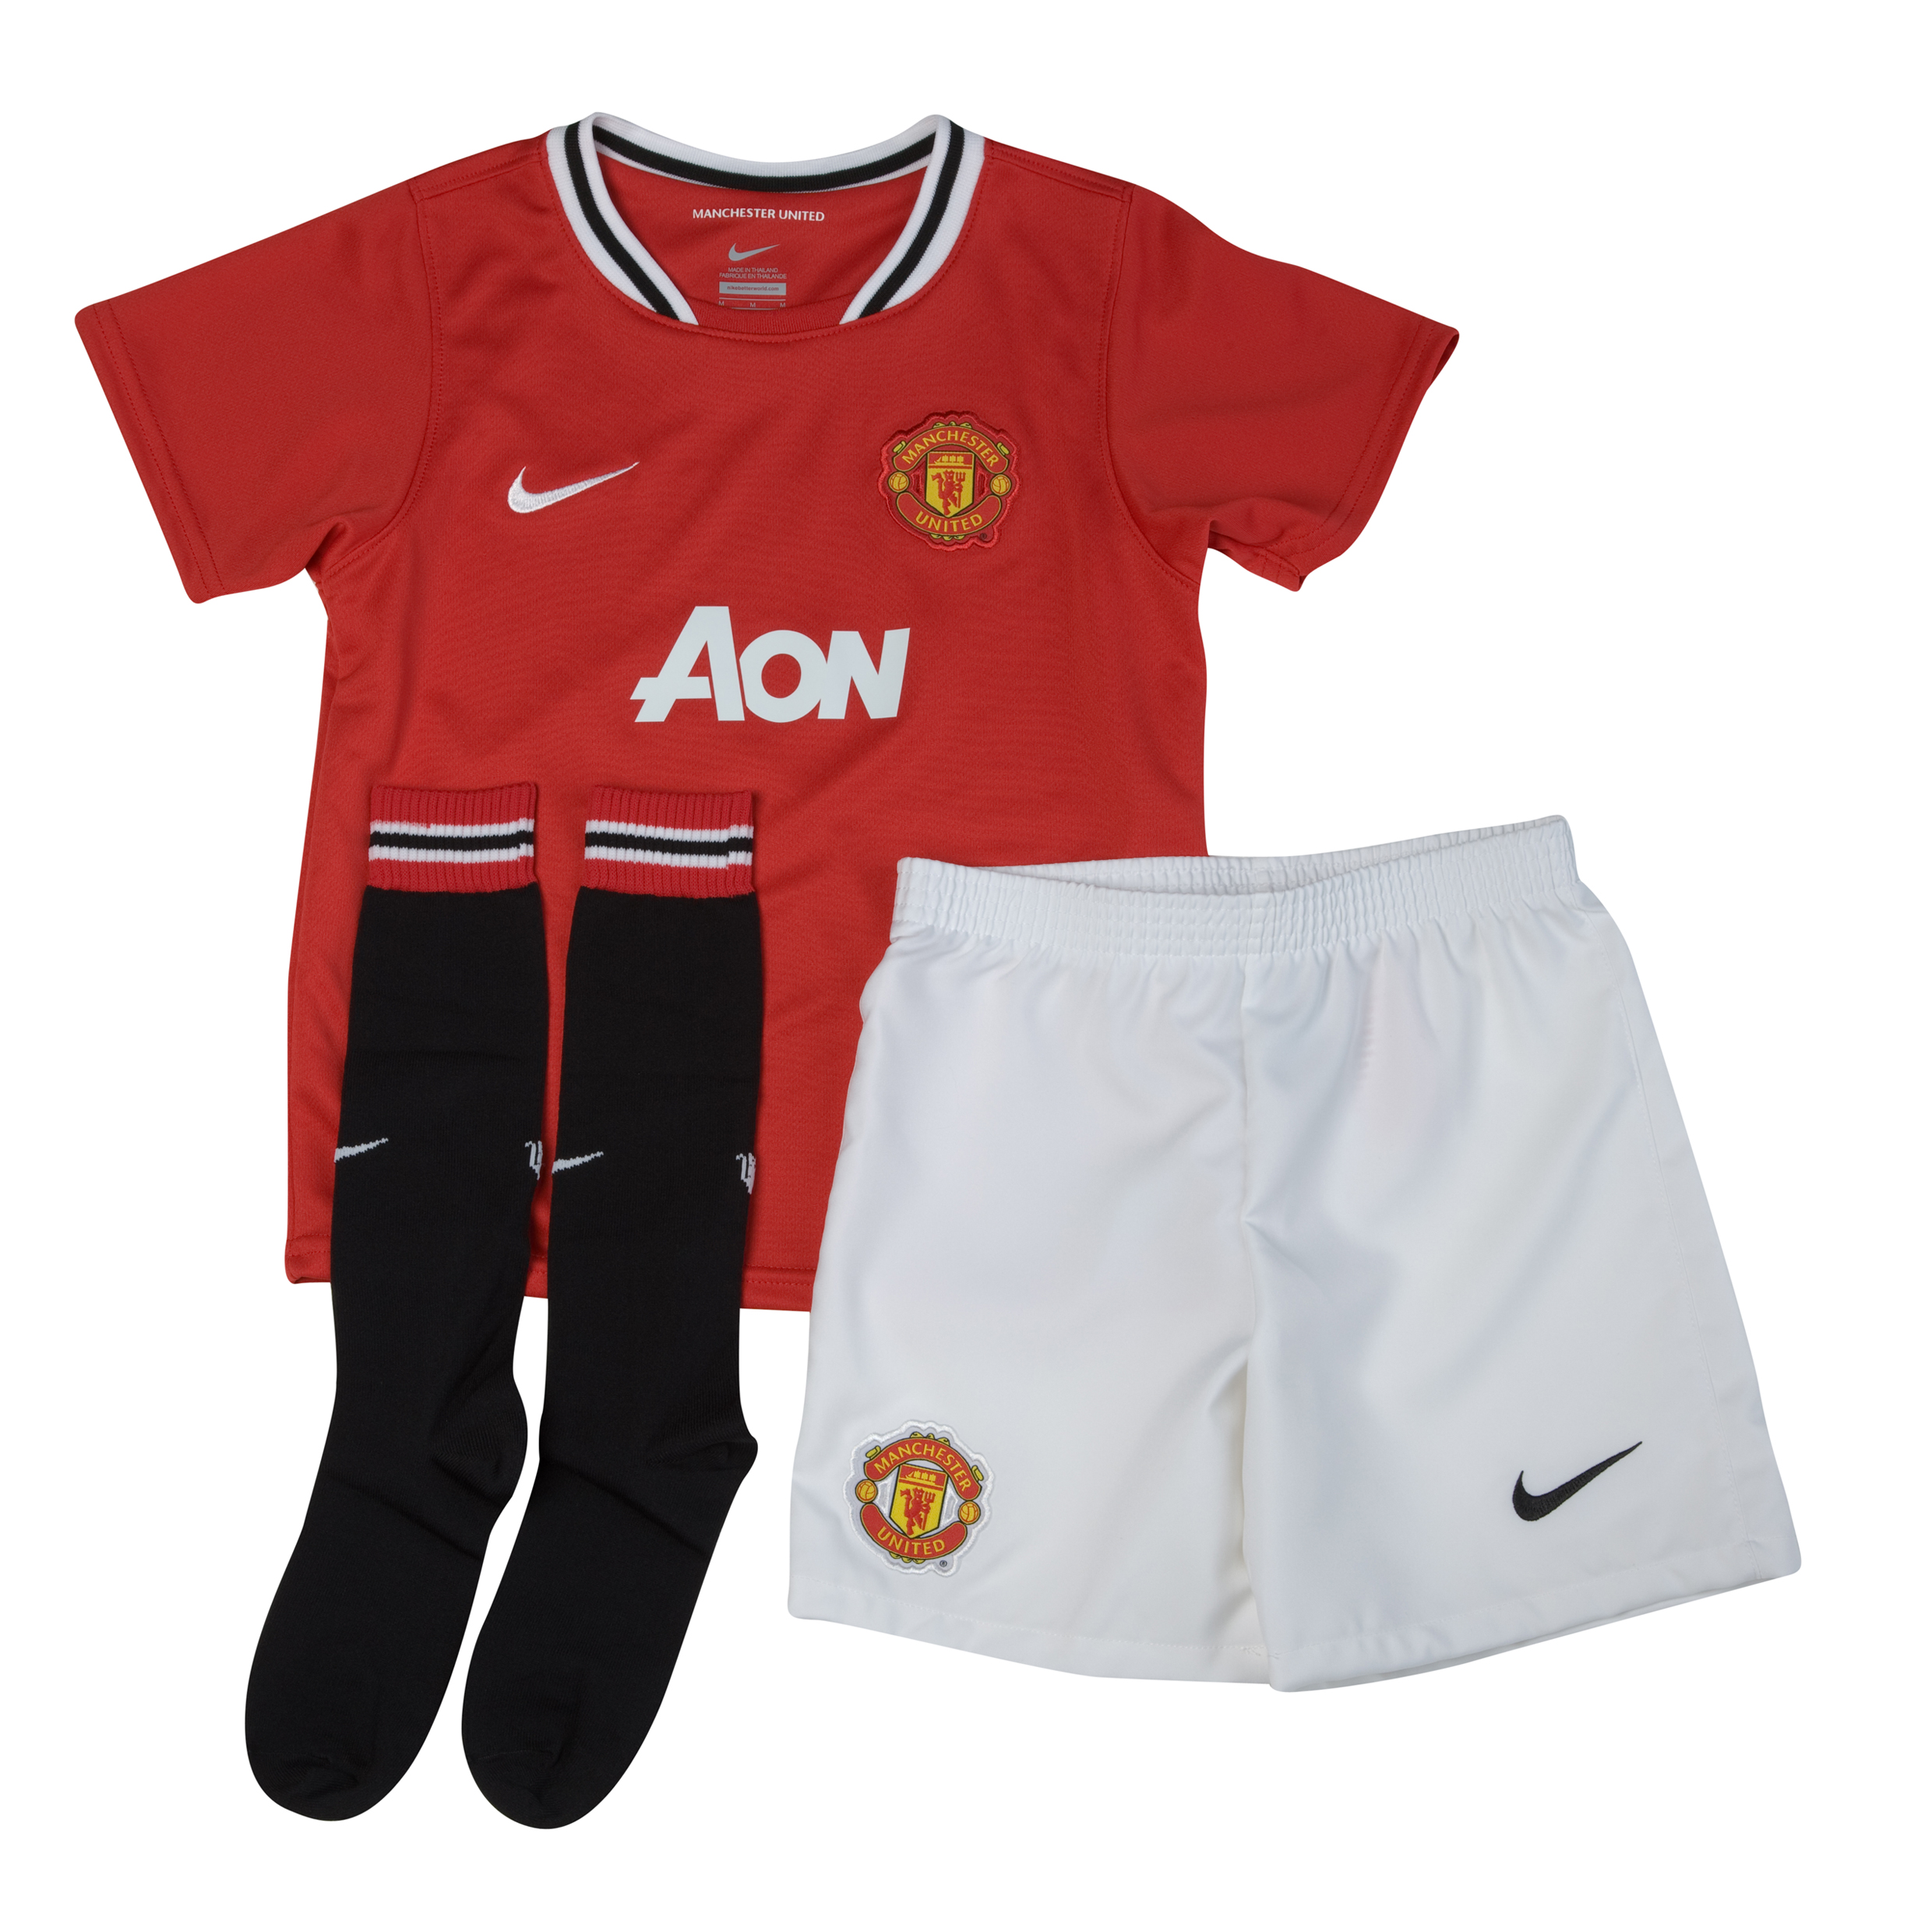 Manchester United Home Kit 2011/12 Little Kids